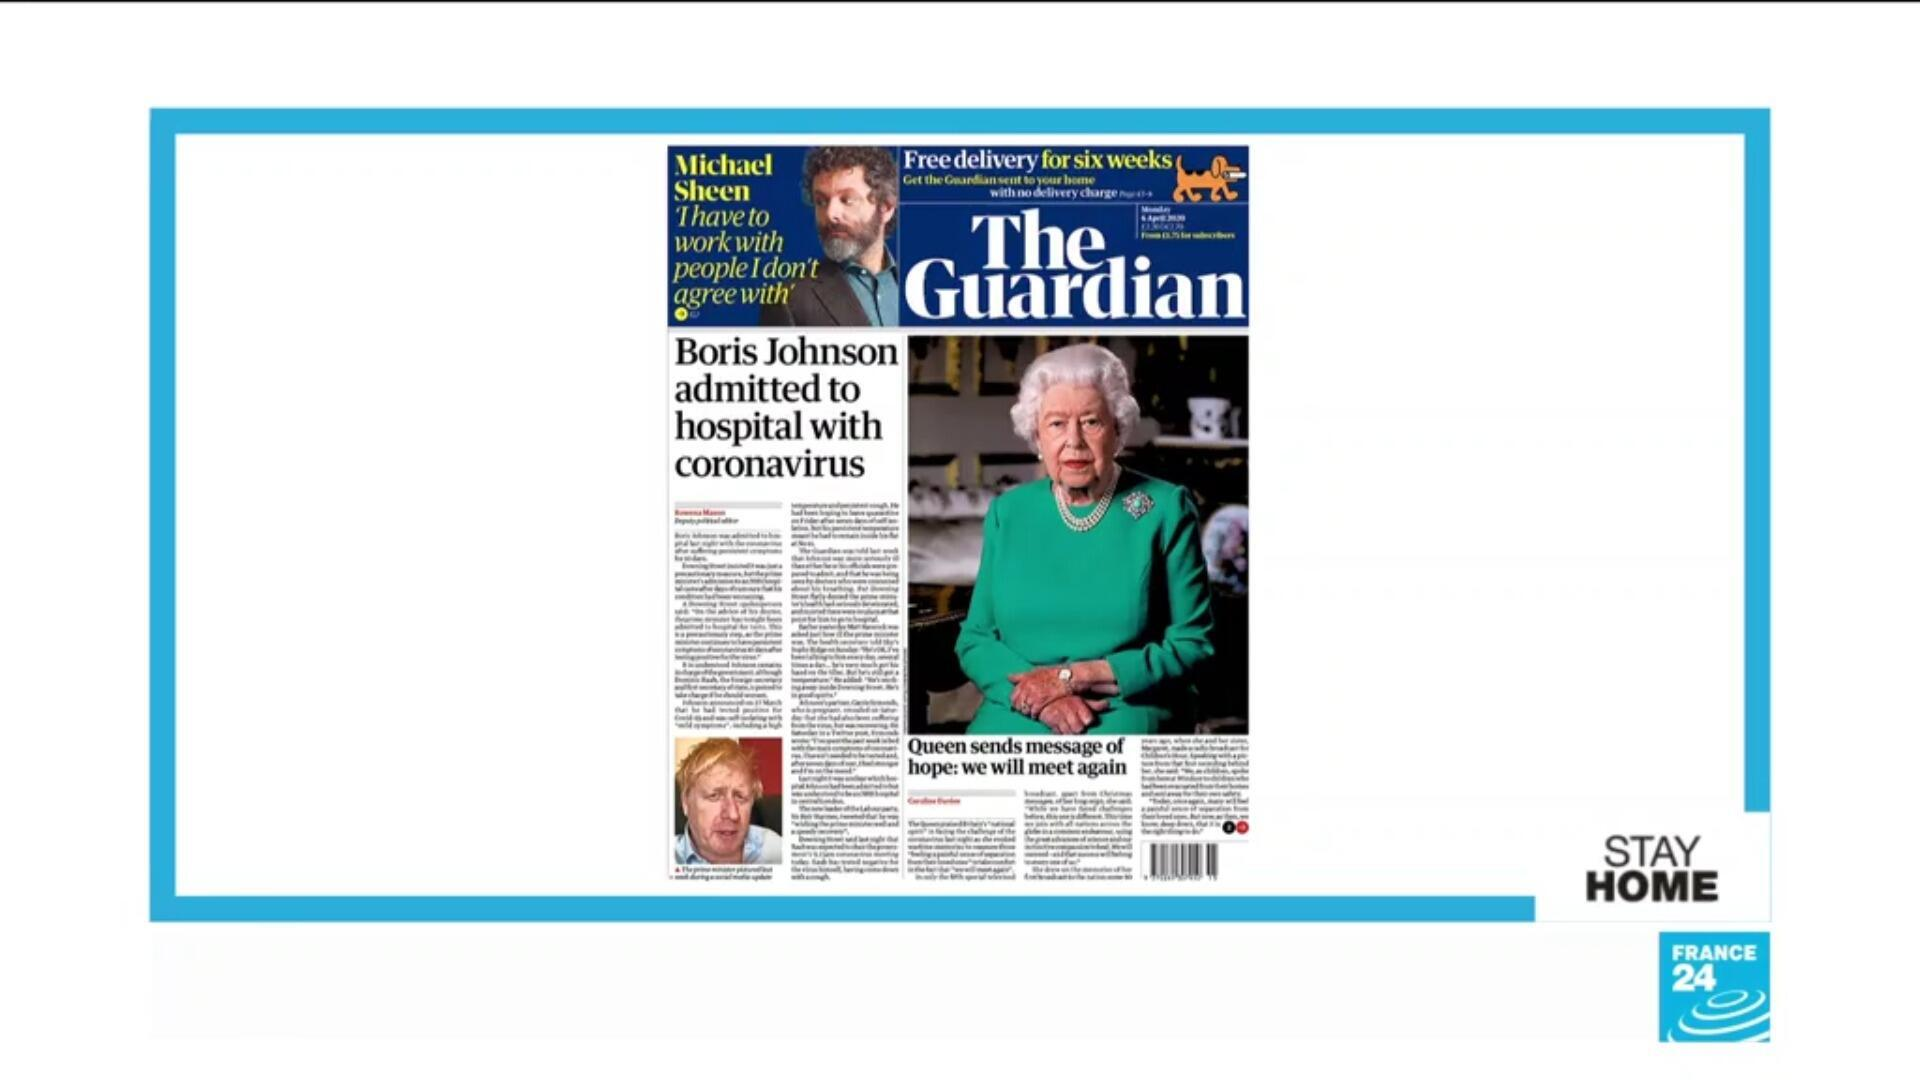 IN THE PAPERS 0406